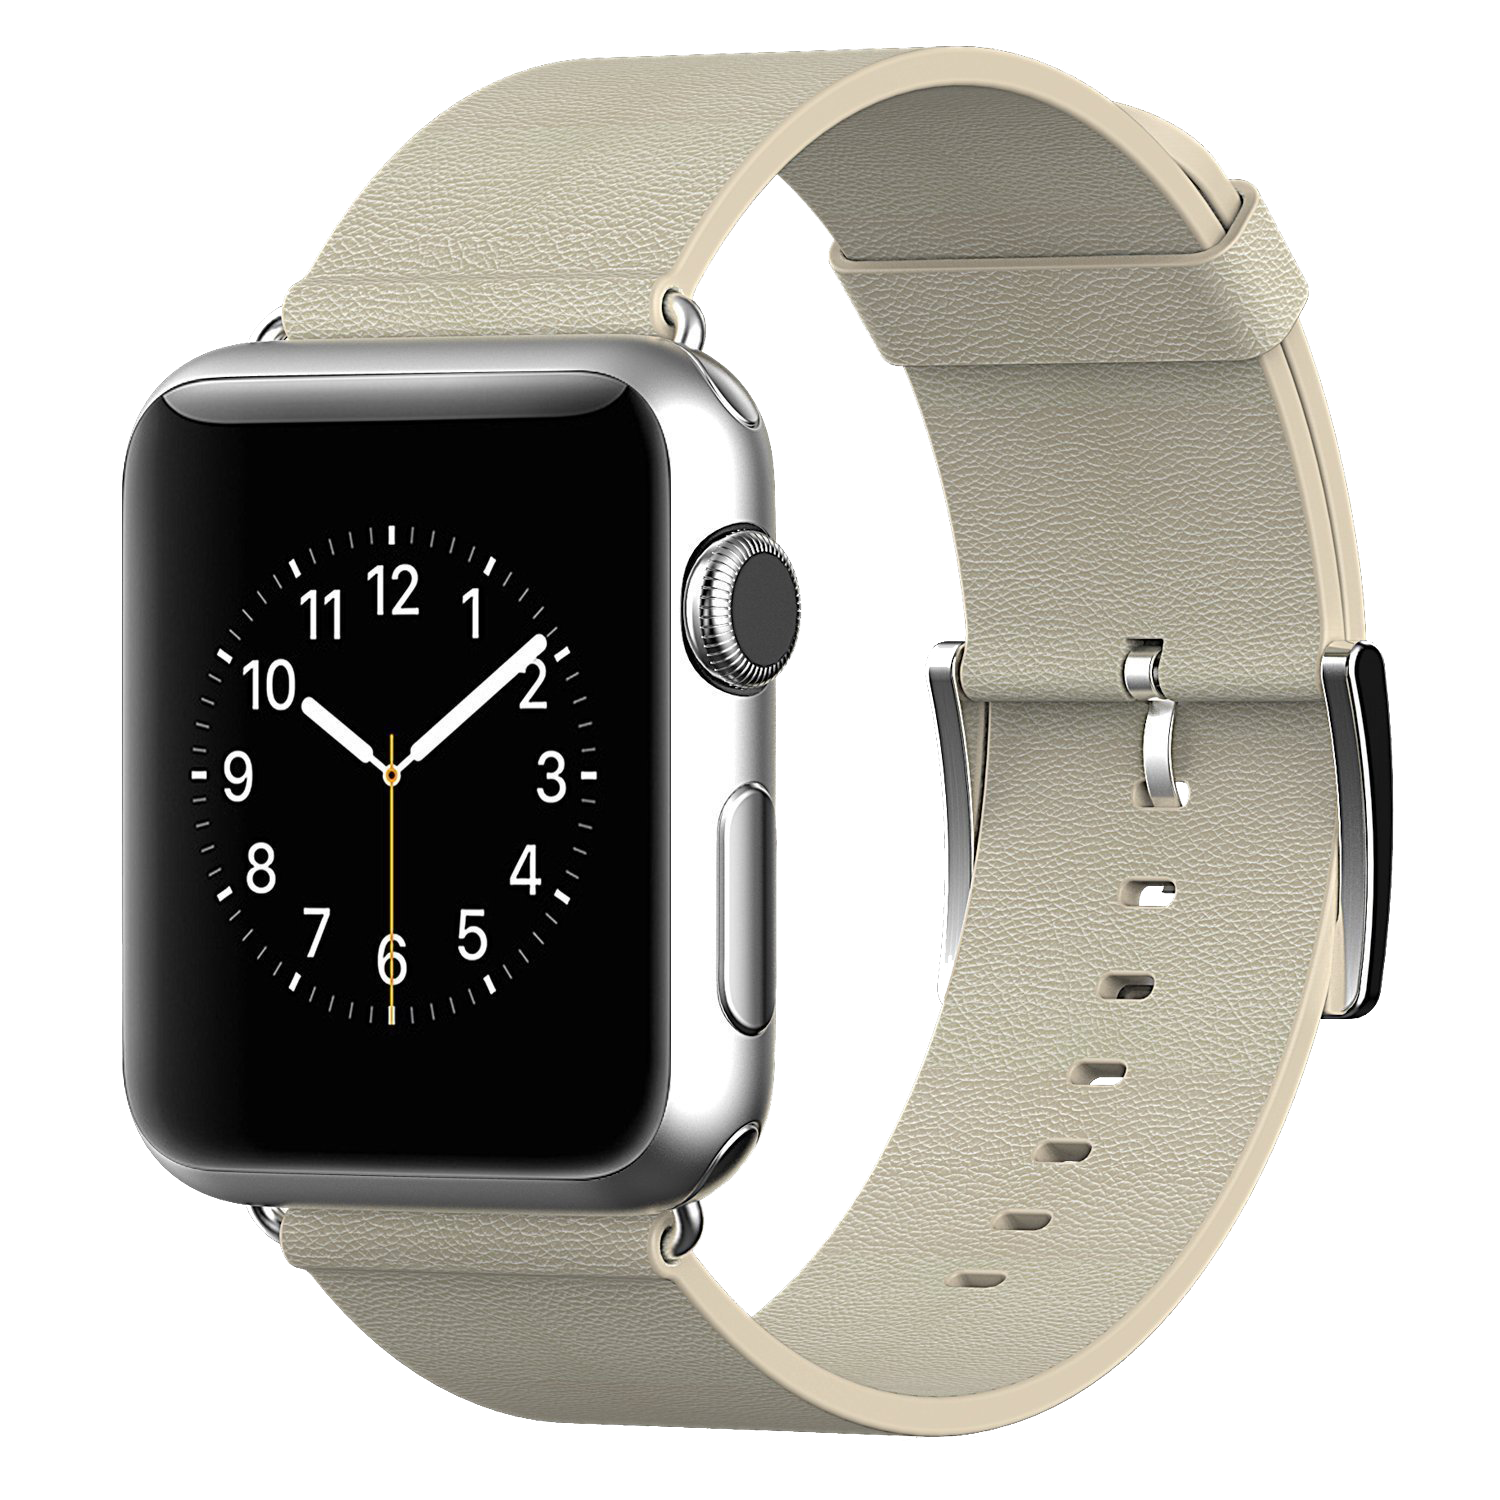 Apple Leather Series Watch Strap Iwatch PNG Image